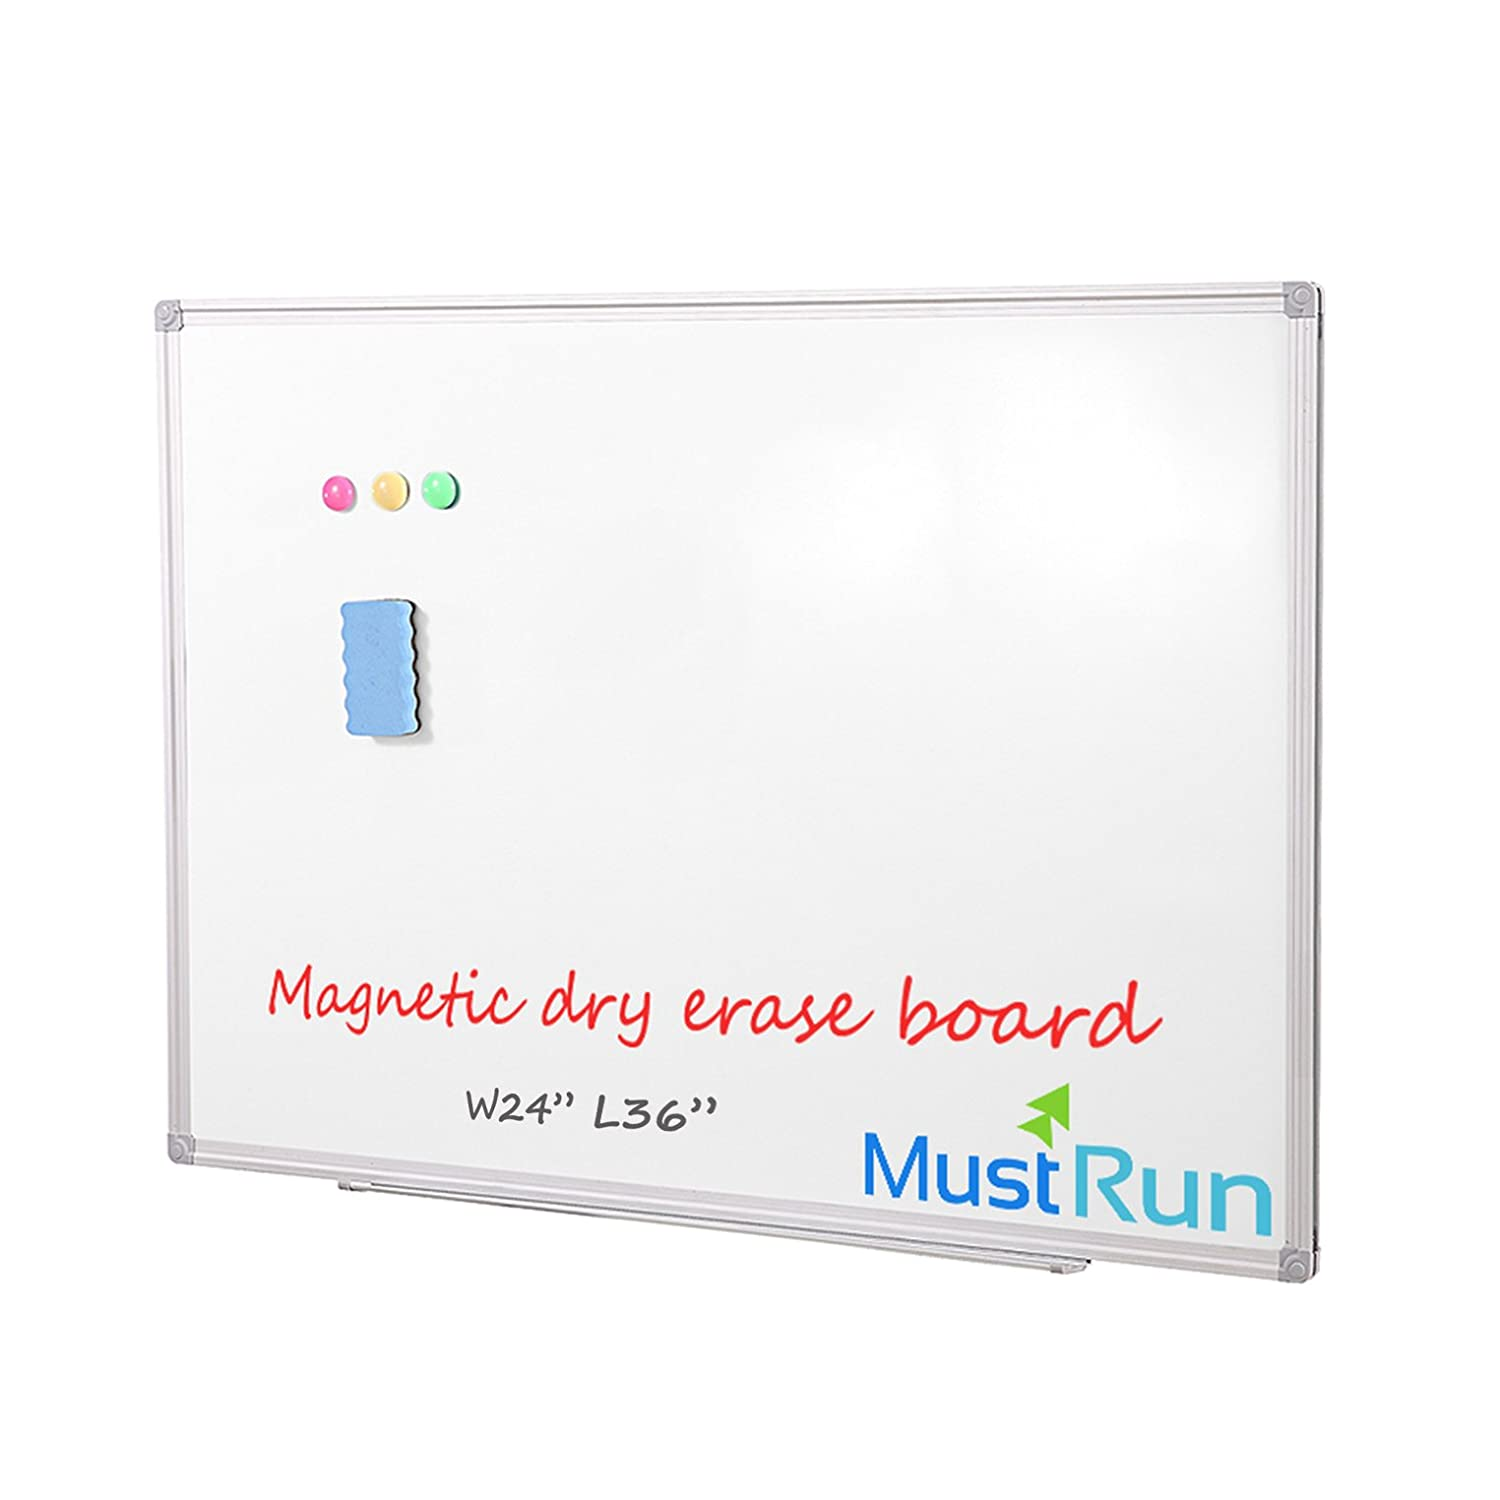 """MustRun 24""""x36""""Magnetic Dry Erase Board Whiteboard With Silver Aluminum Frame,Wall Mounted(1 Erase&3 Magnets)"""